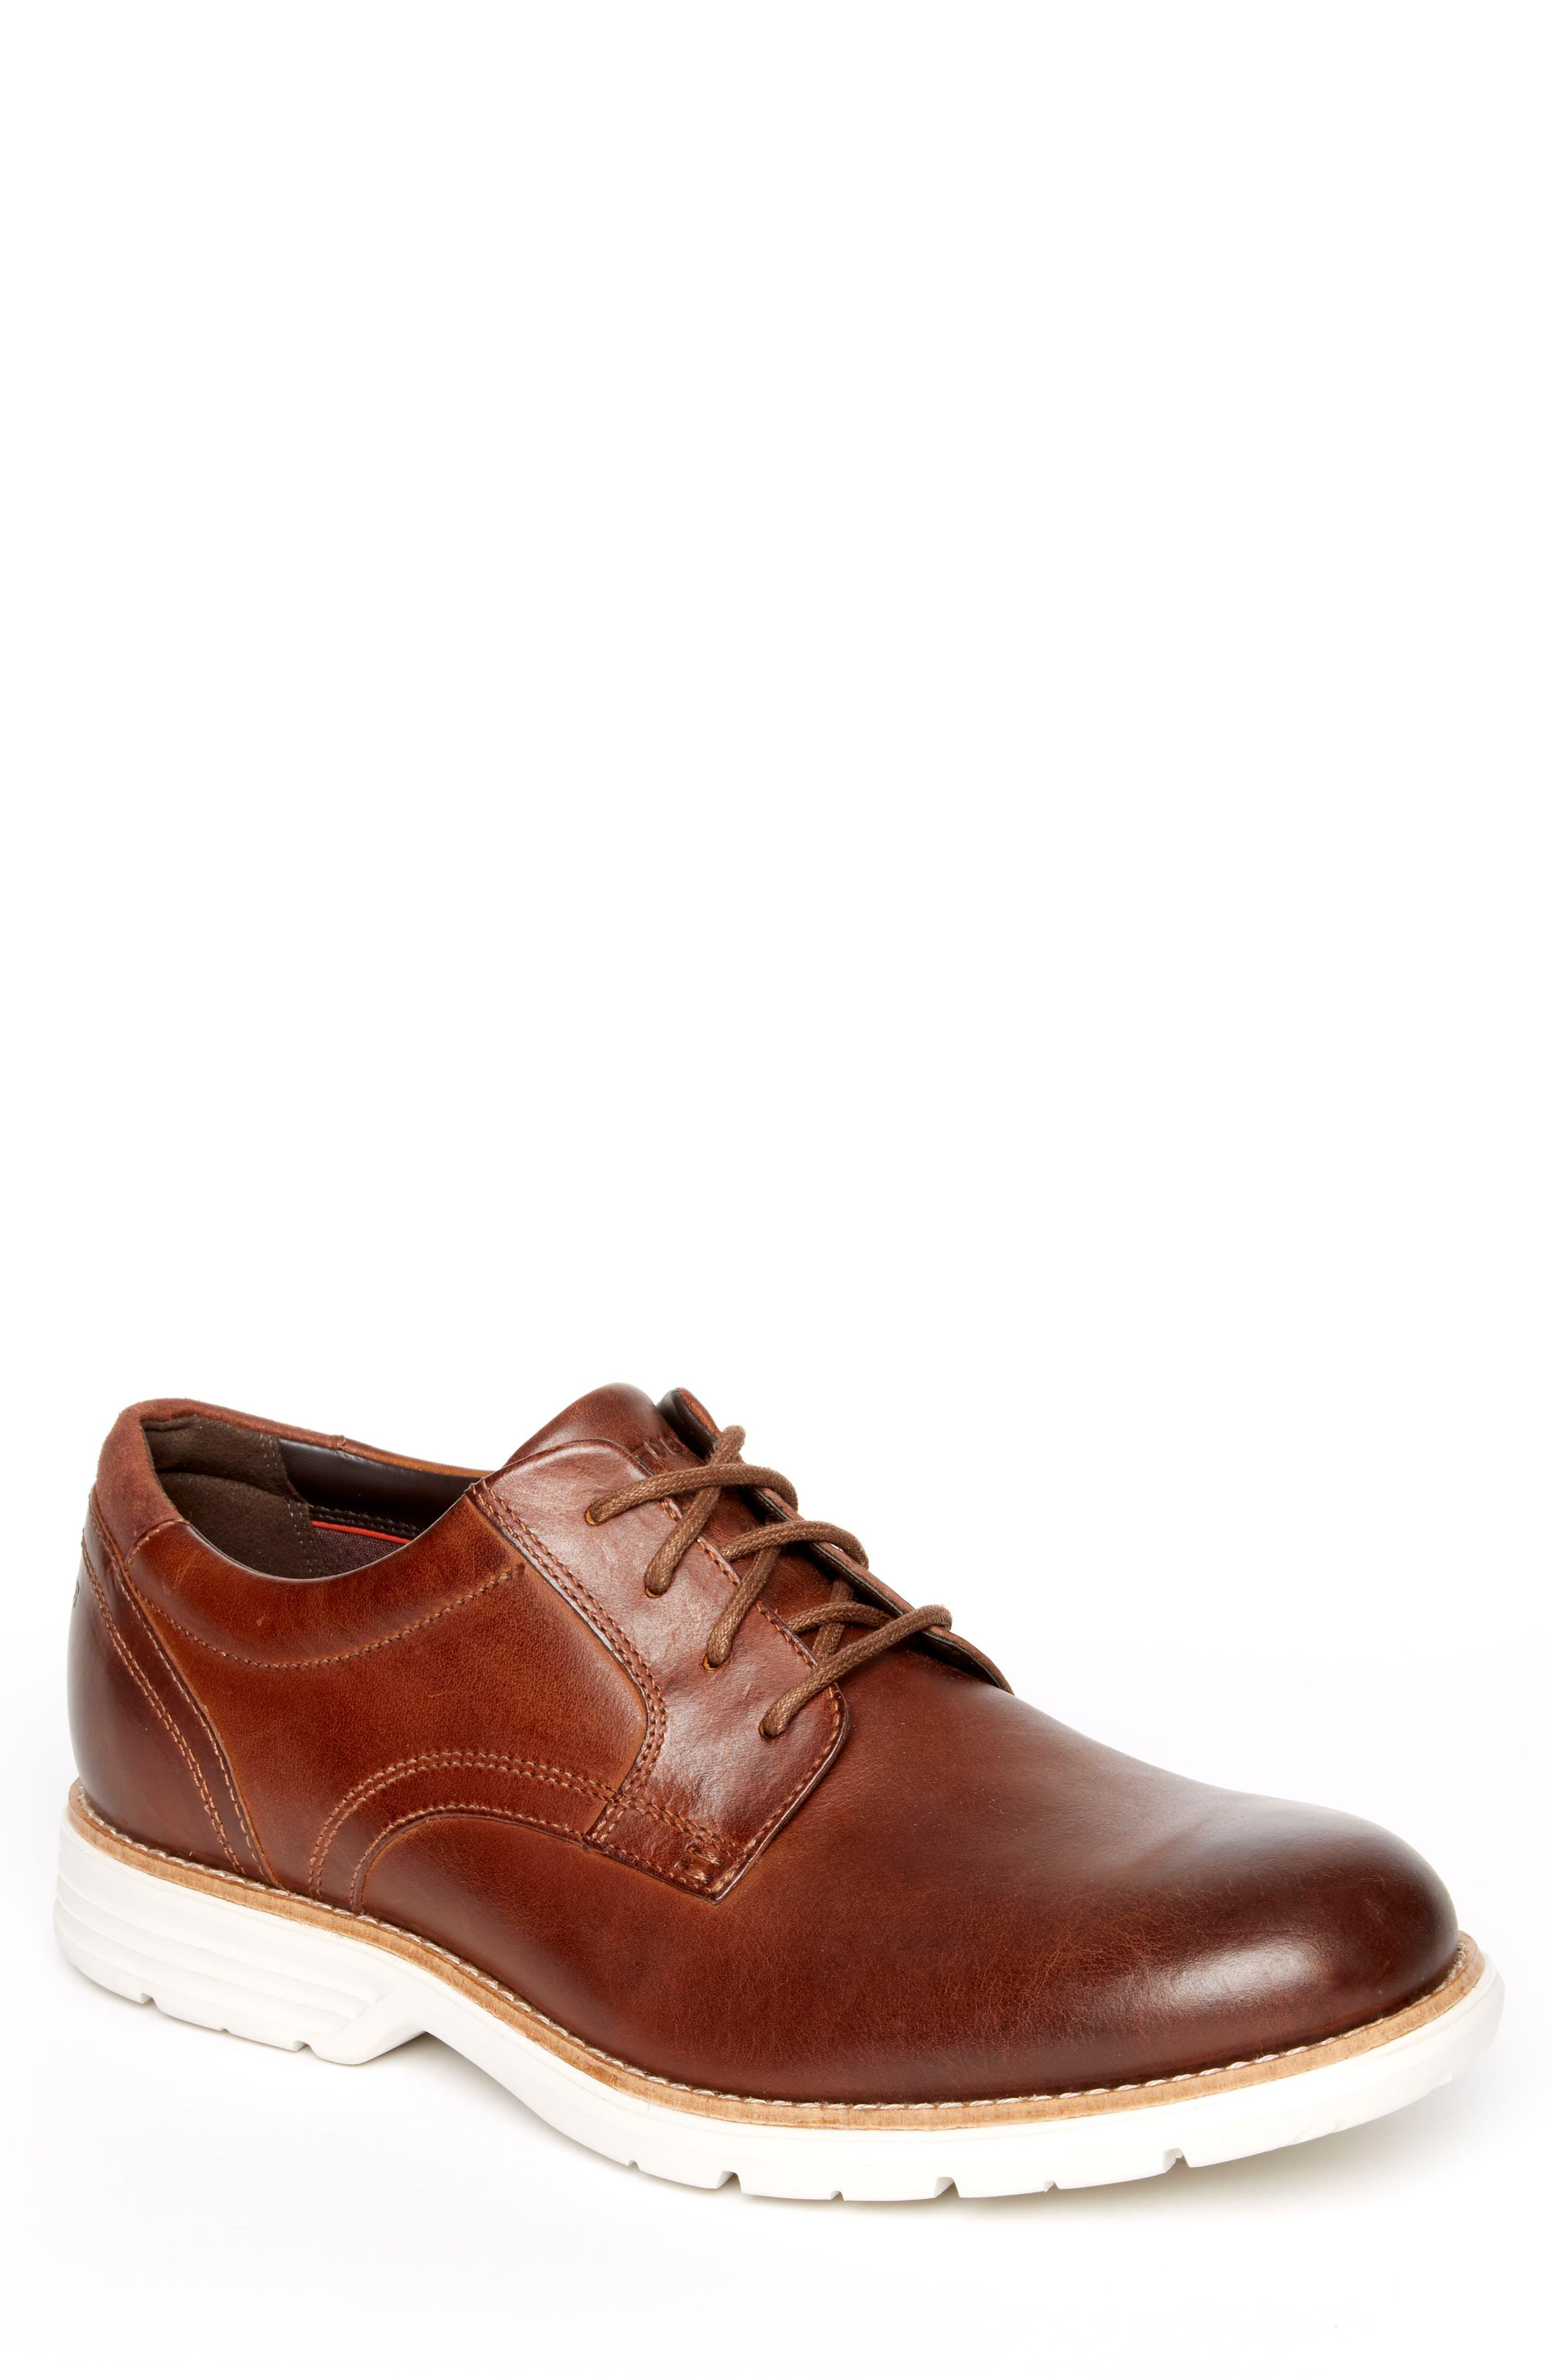 Total Motion Fusion Plain Toe Derby,                             Main thumbnail 1, color,                             New Carmel Leather